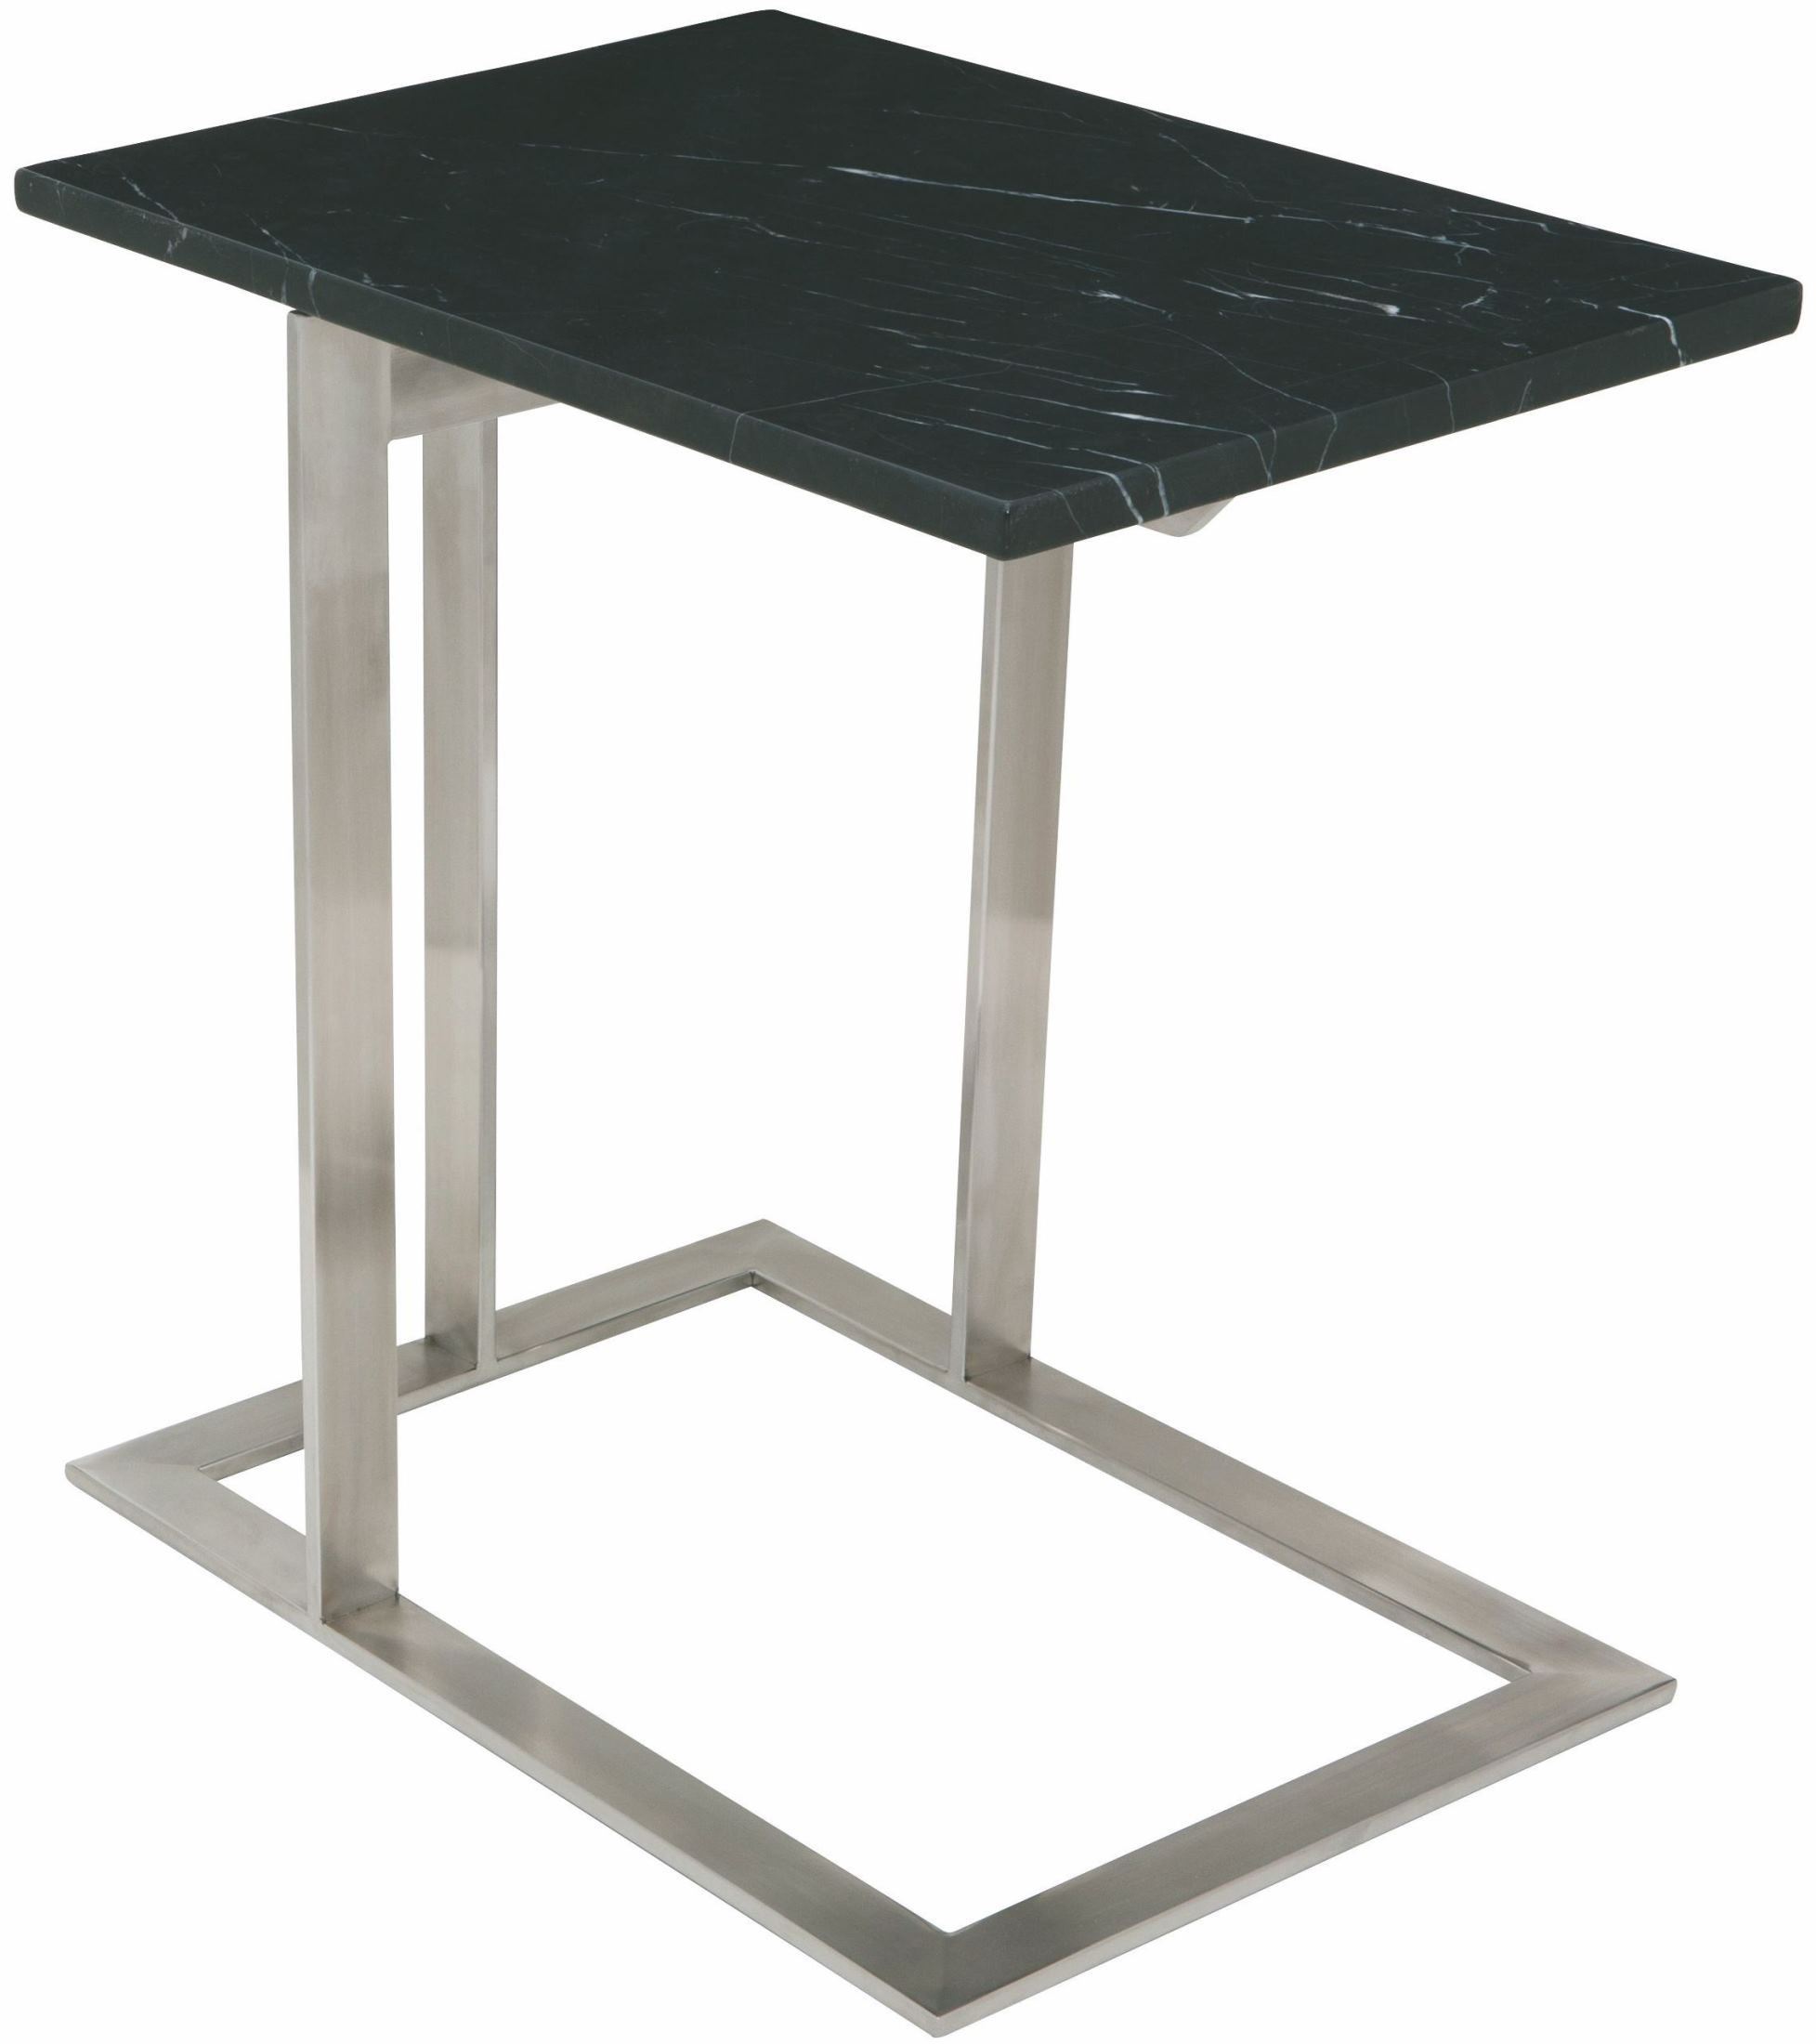 dell black stone and silver metal side table